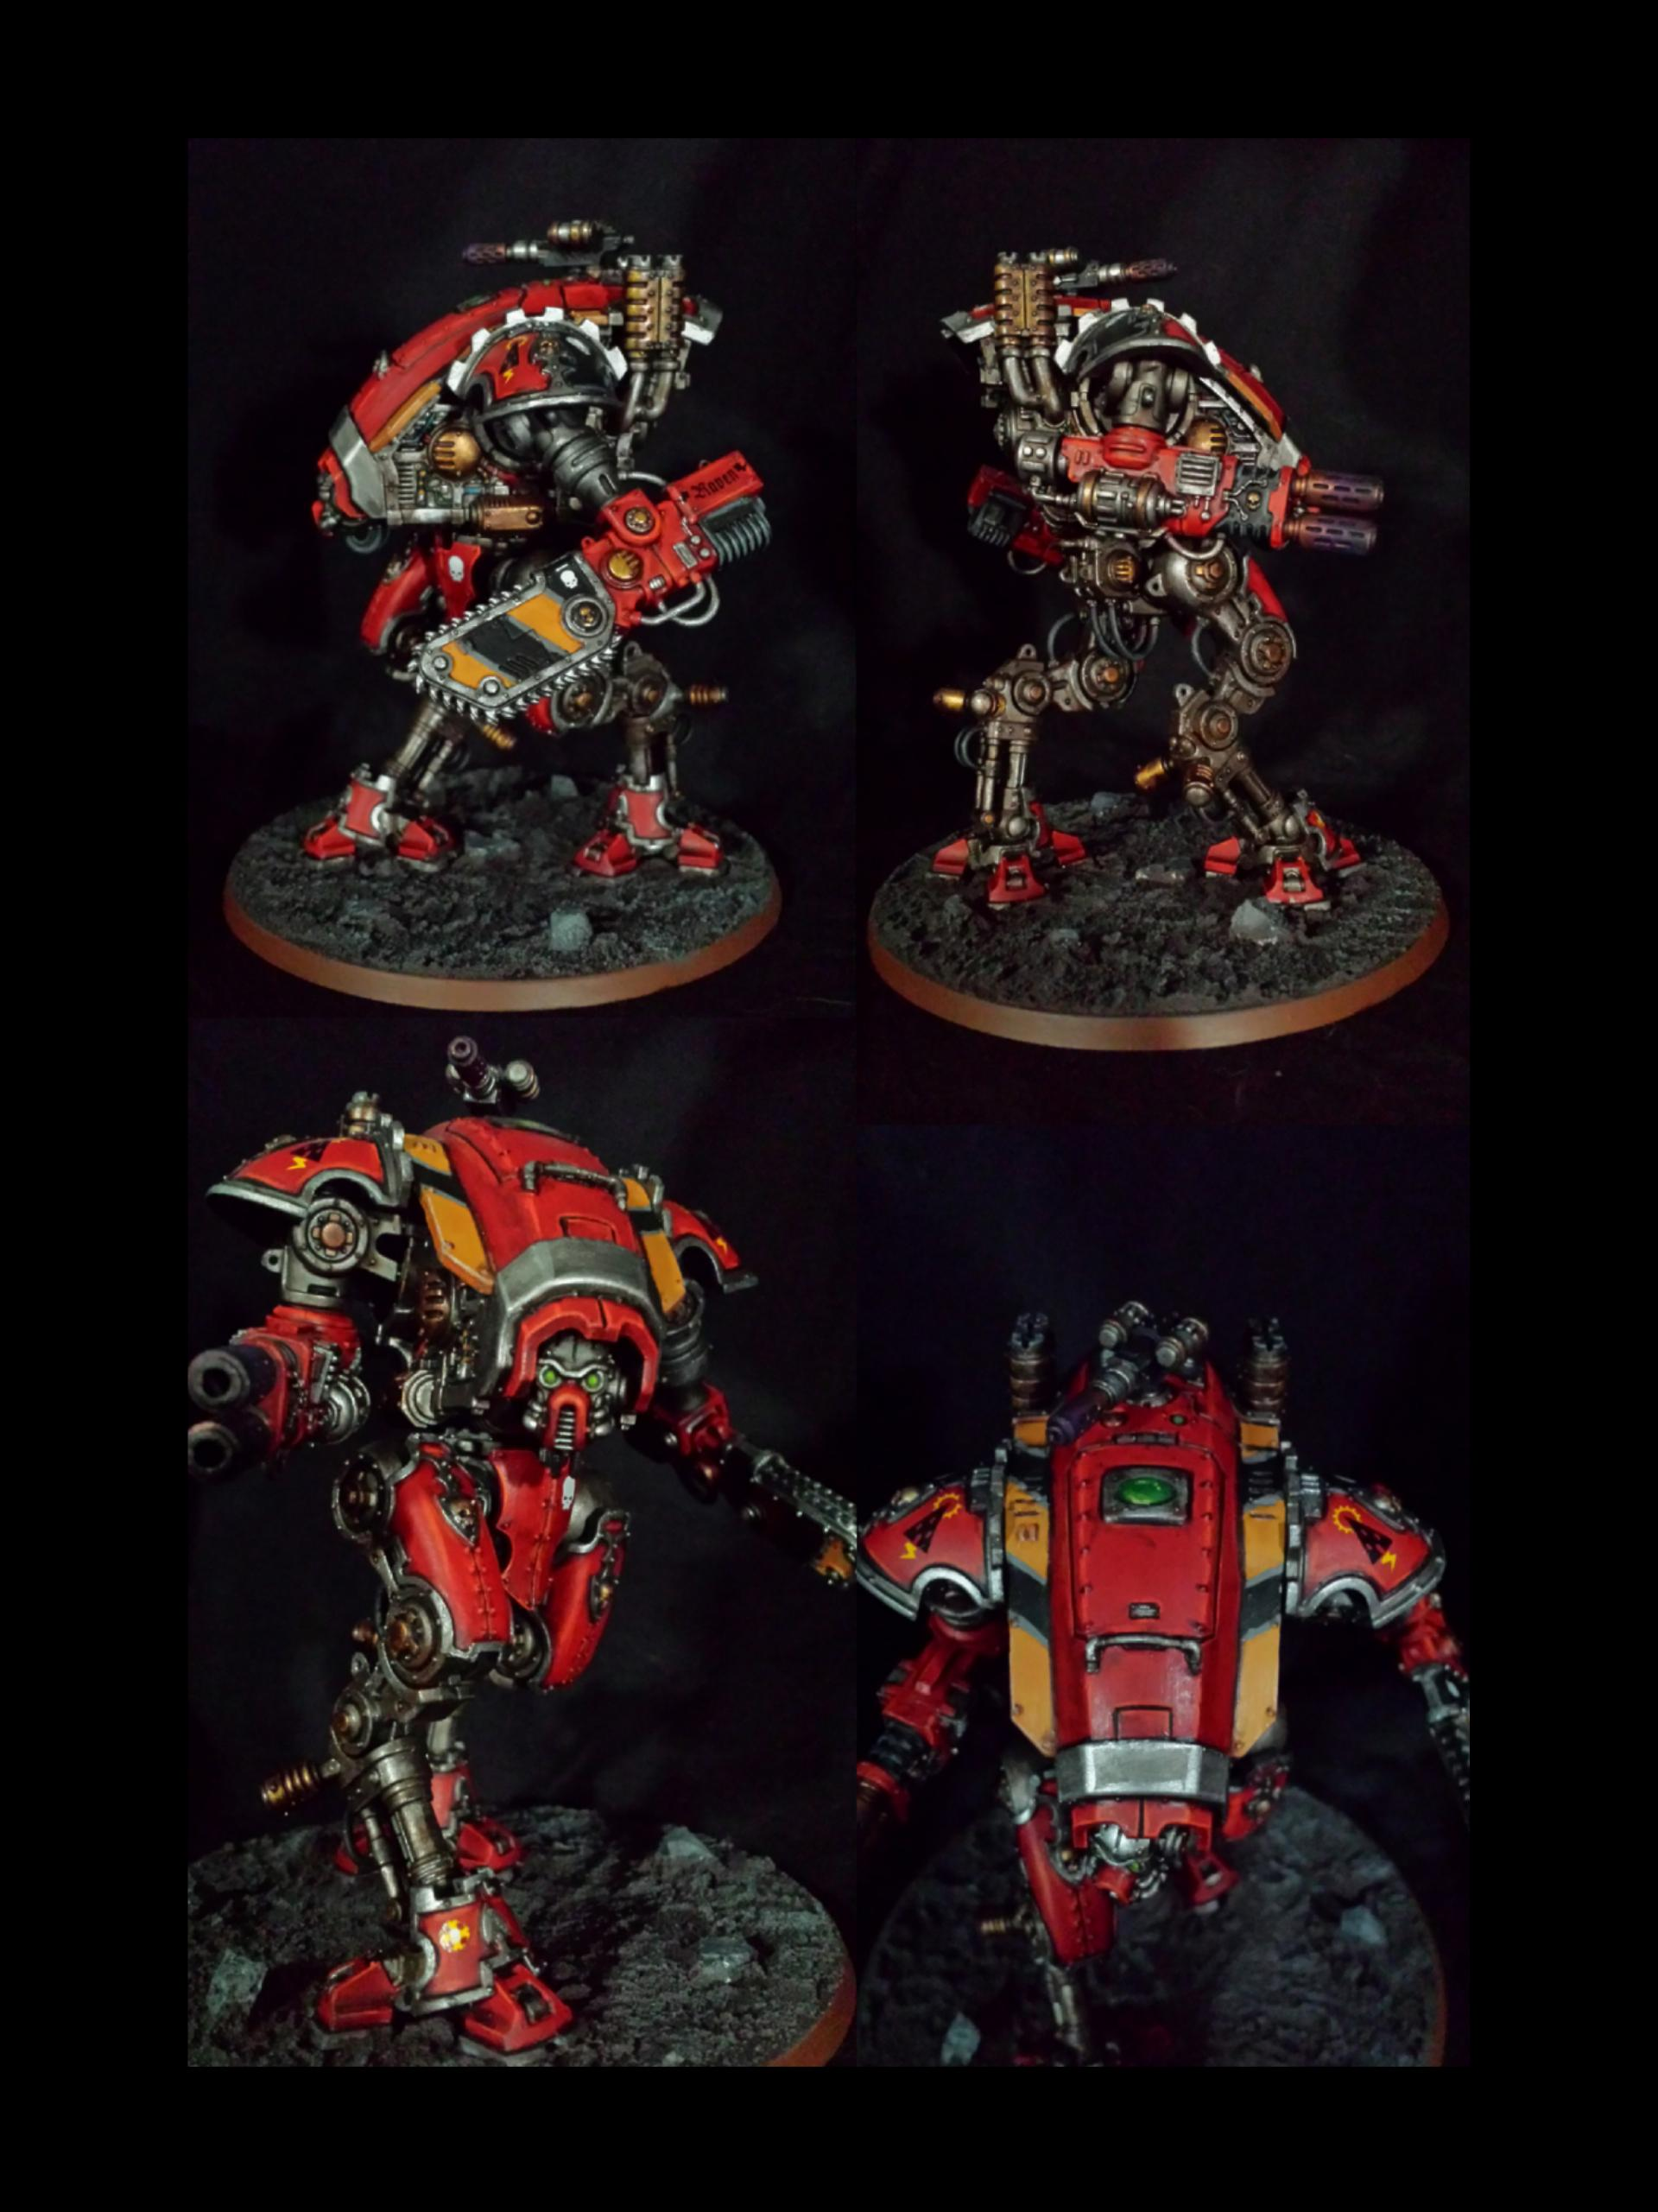 Armiger Warglaive, Imperial Knight, Mechanicus